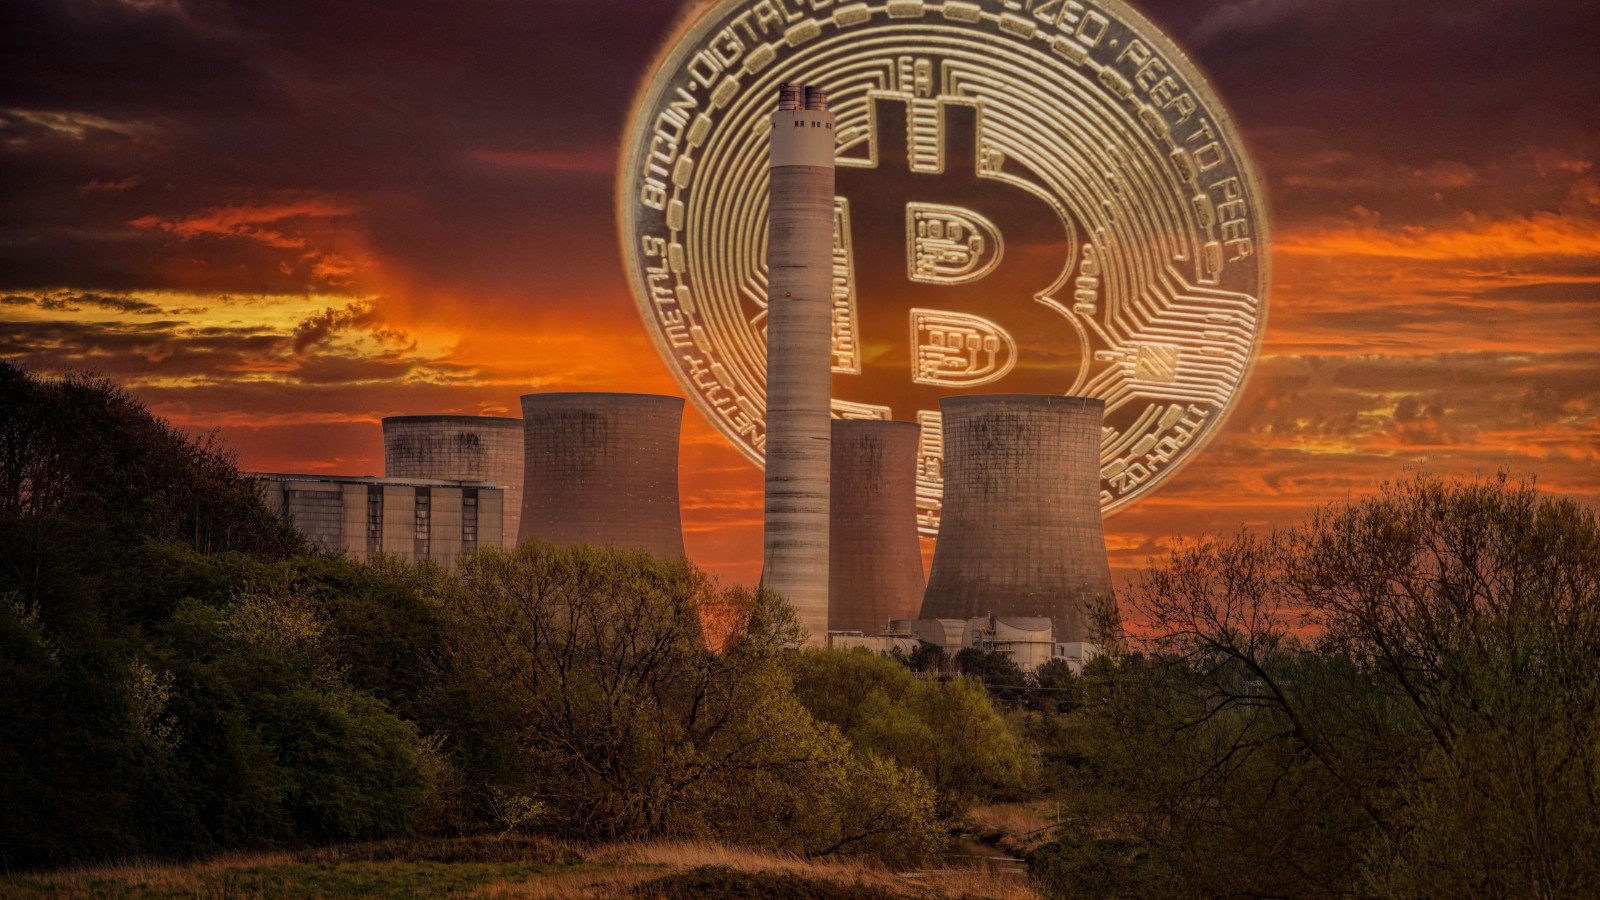 Thief jeopardizes state secrets by using nuclear power plant to mine cryptocurrency